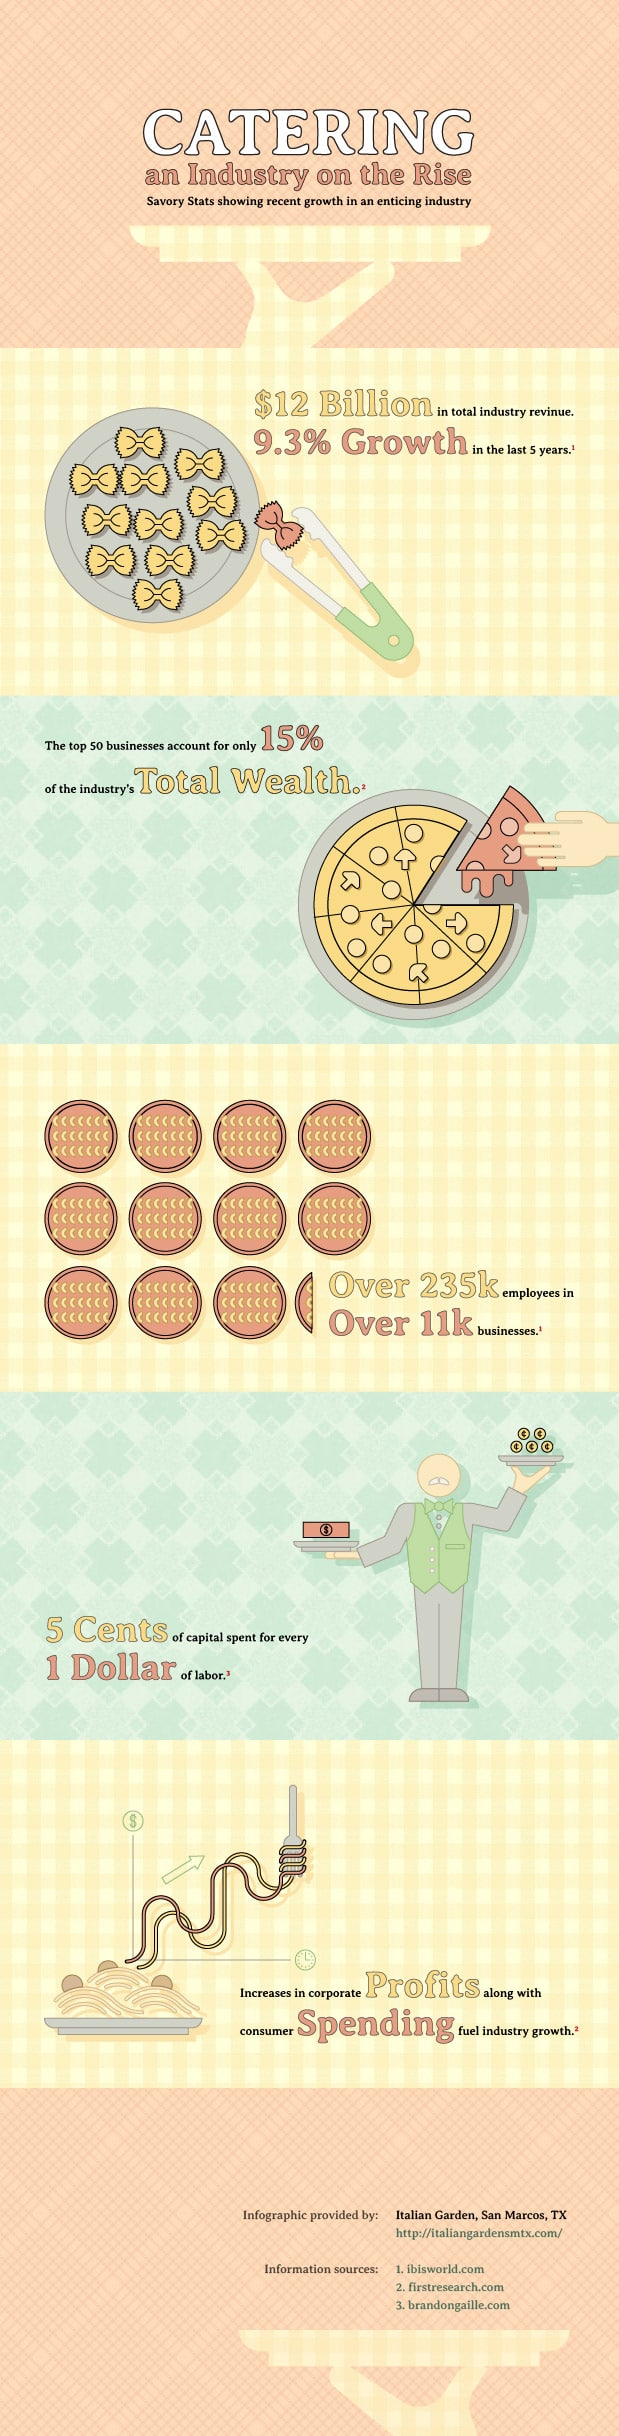 Catering Stats Infographic